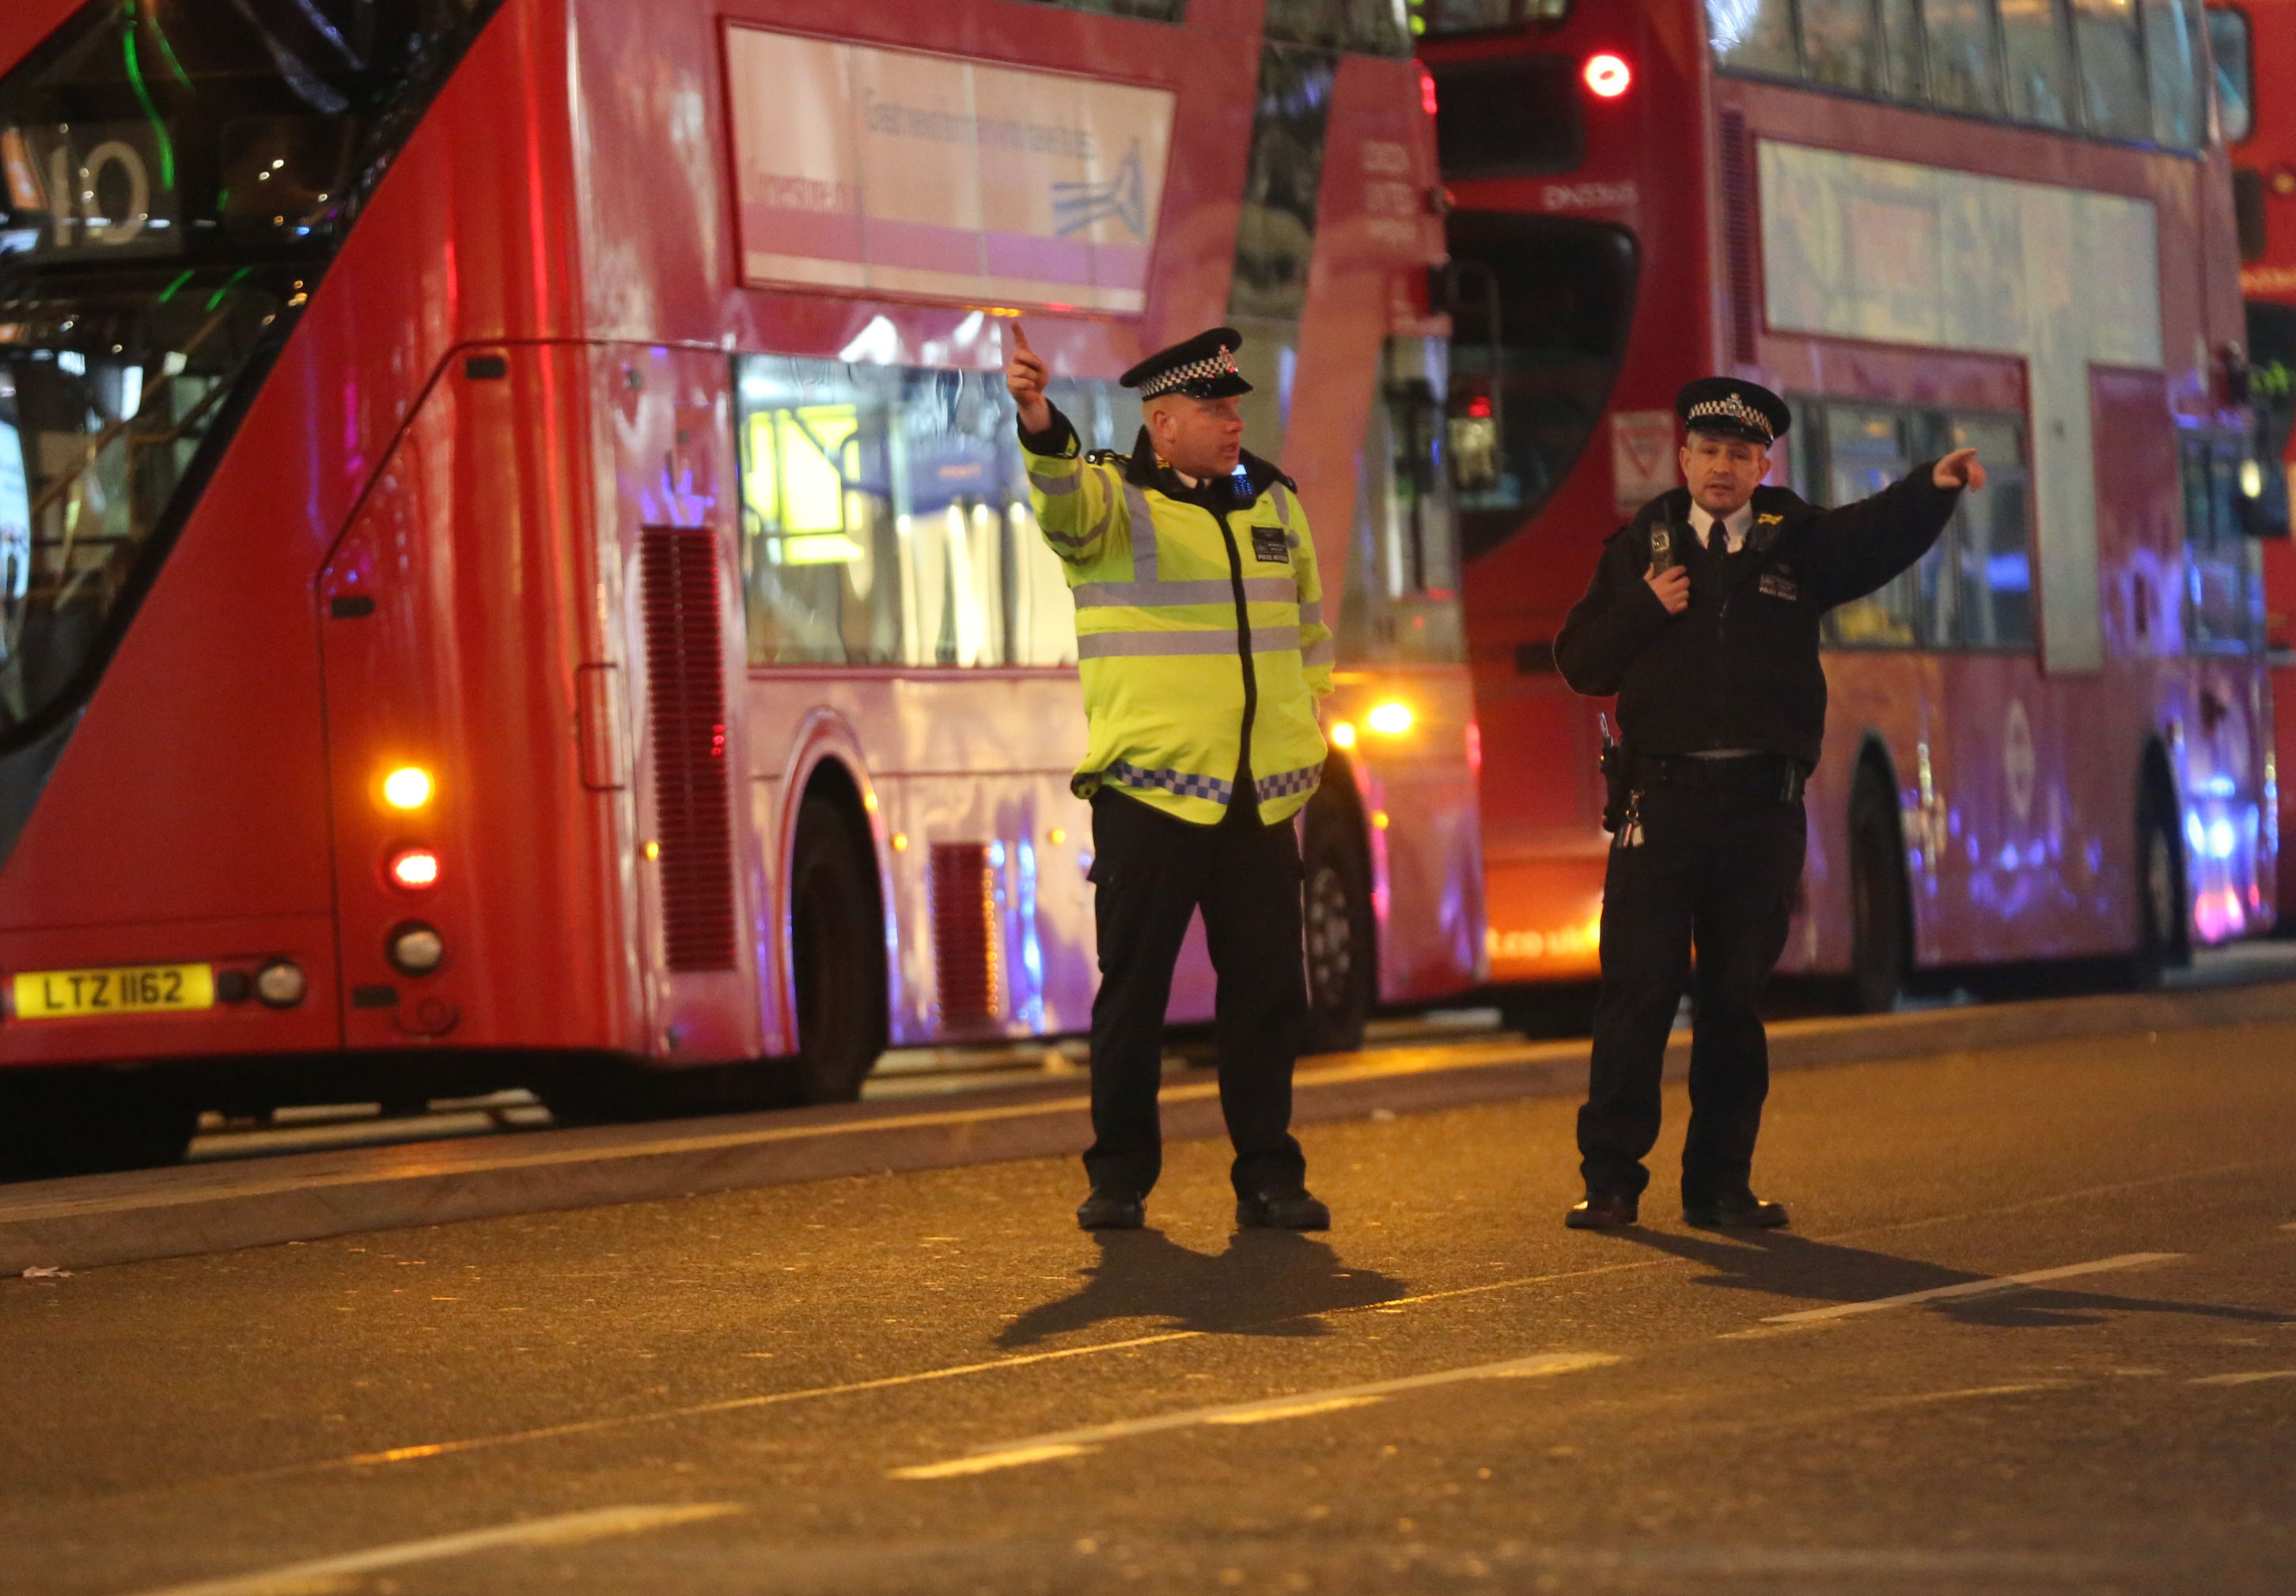 Police officers directing members of the public on Oxford Street in London (Isabel Infantes/PA Wire)